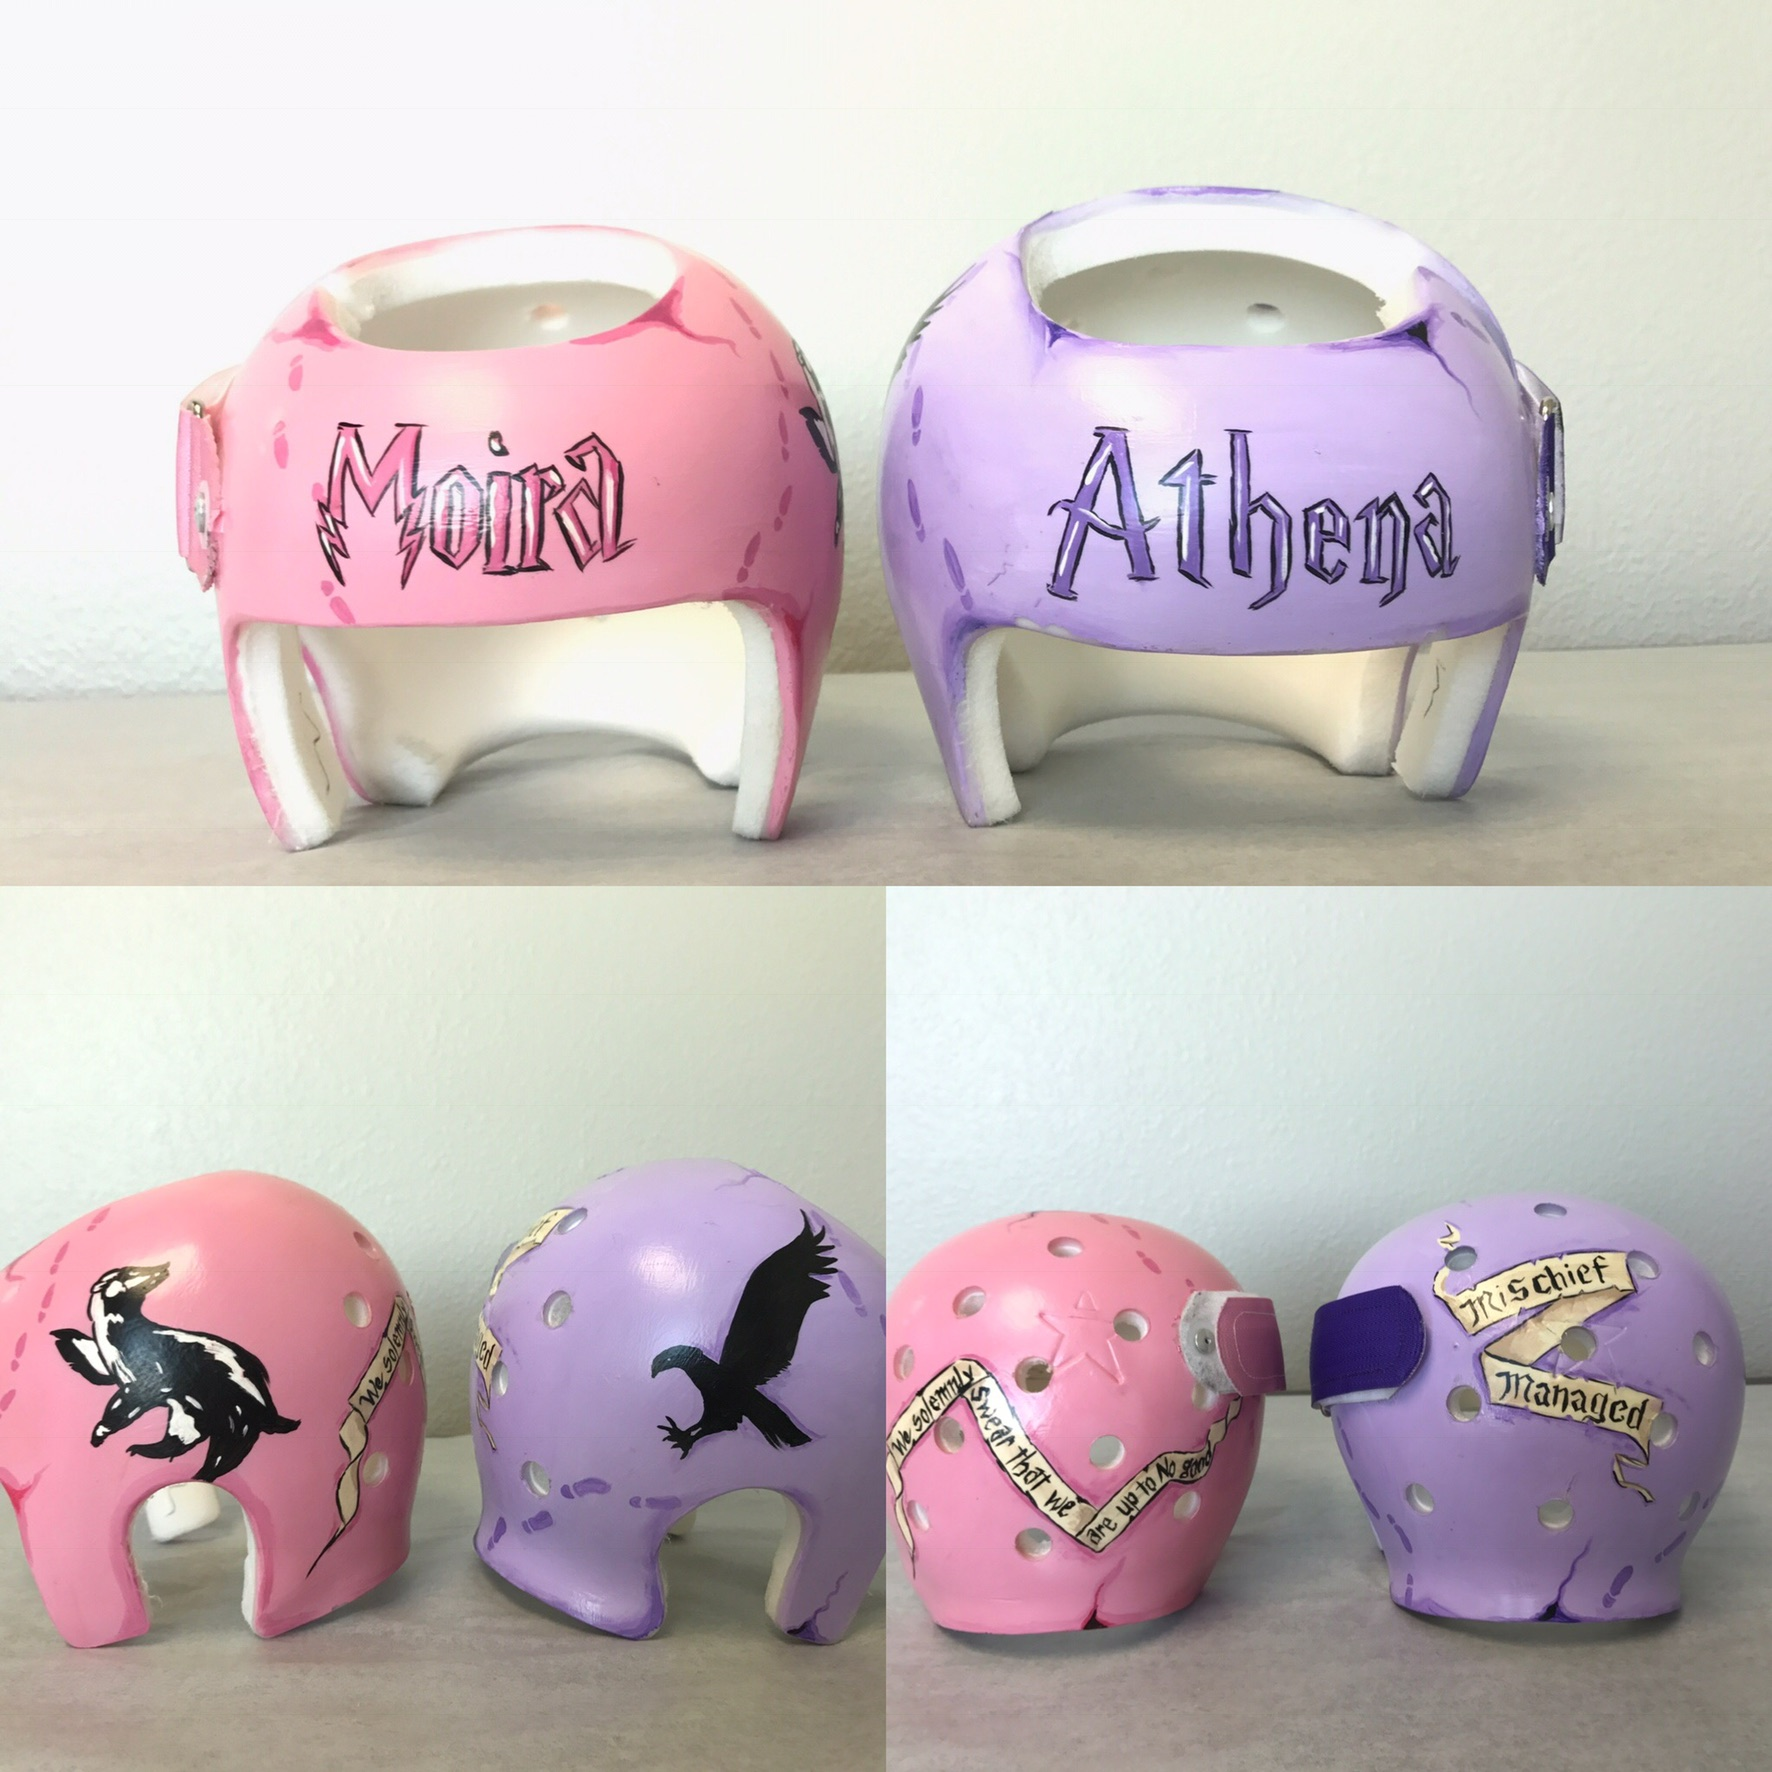 Harry Potter Twins| Painted Cranial Helmet | Custom Painted Cranial Band | Cranial Band Artist